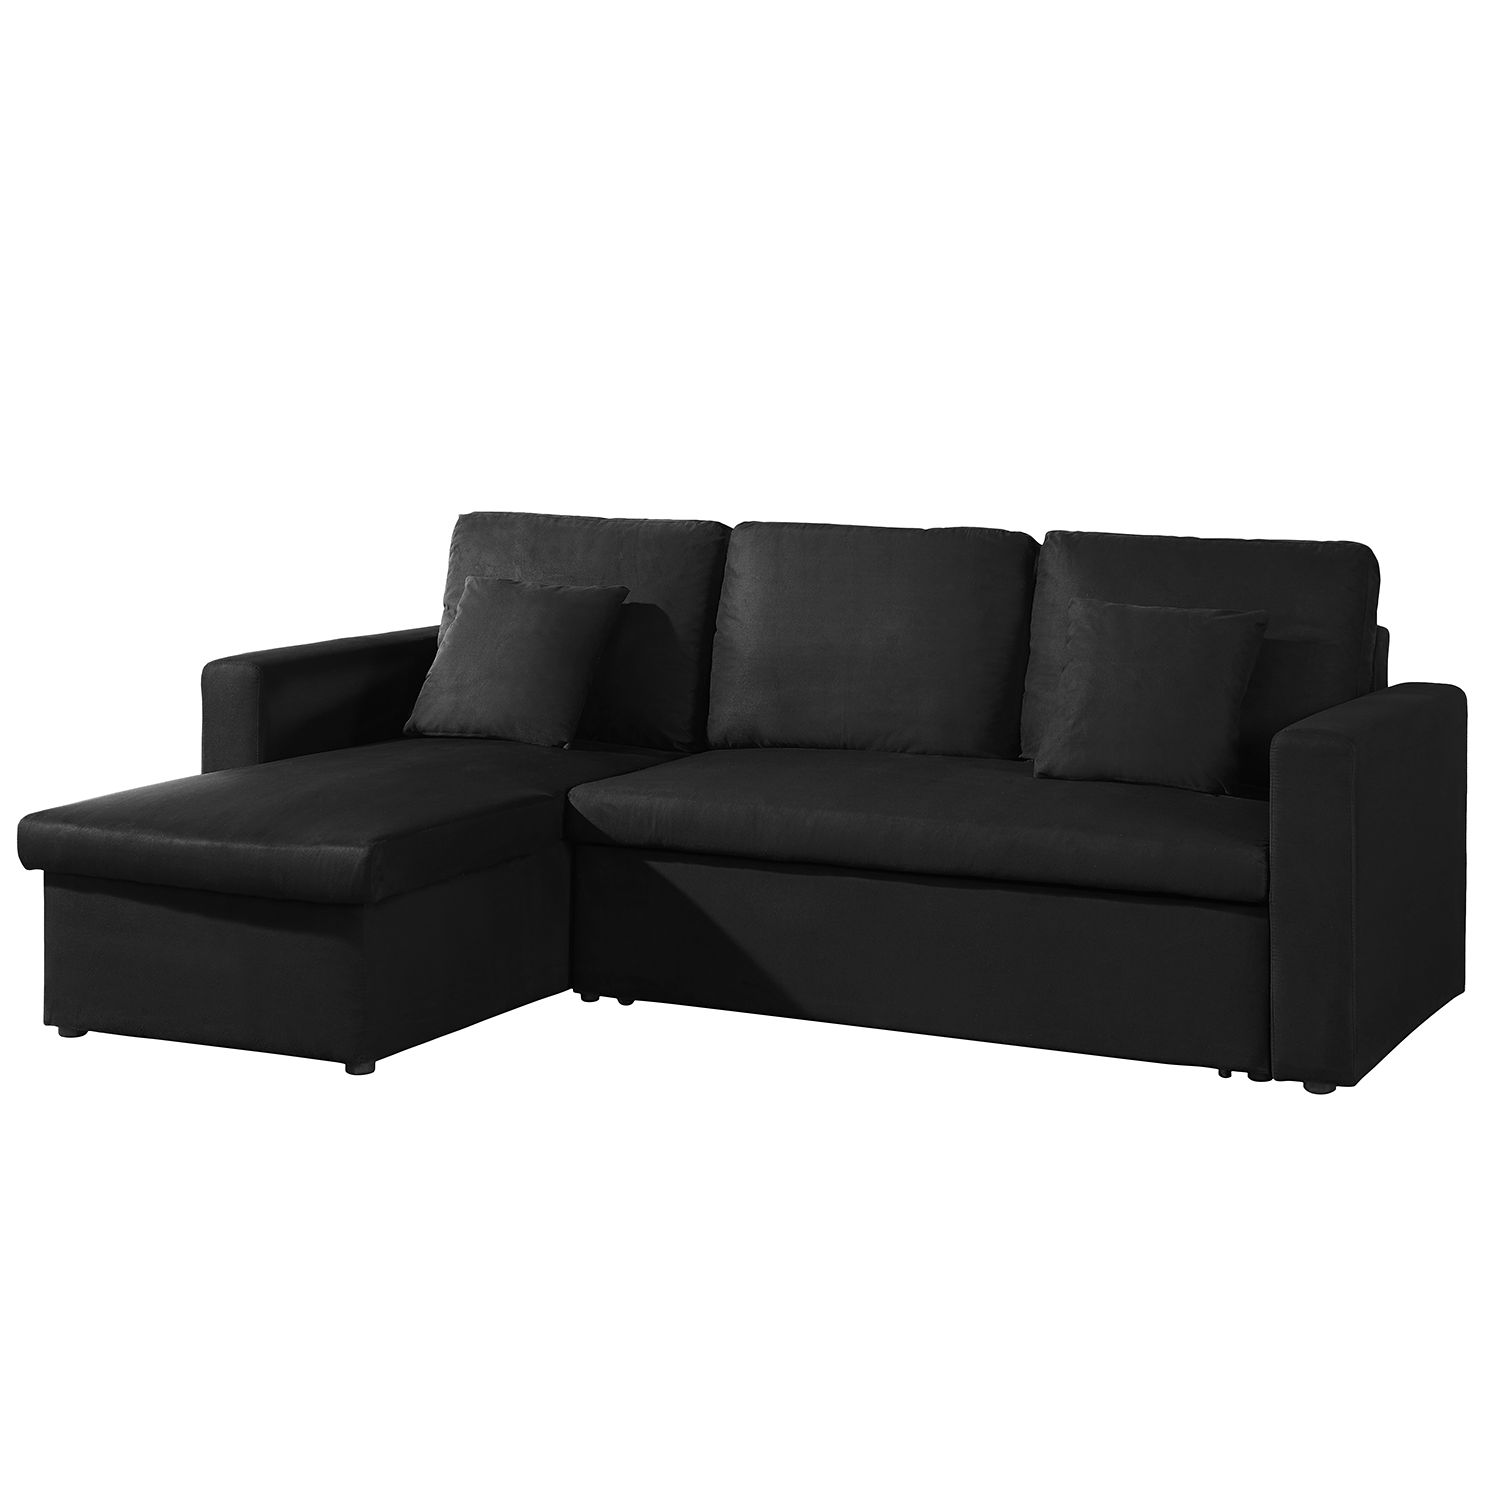 ecksofa mit schlaffunktion microfaser inspirierendes design f r wohnm bel. Black Bedroom Furniture Sets. Home Design Ideas